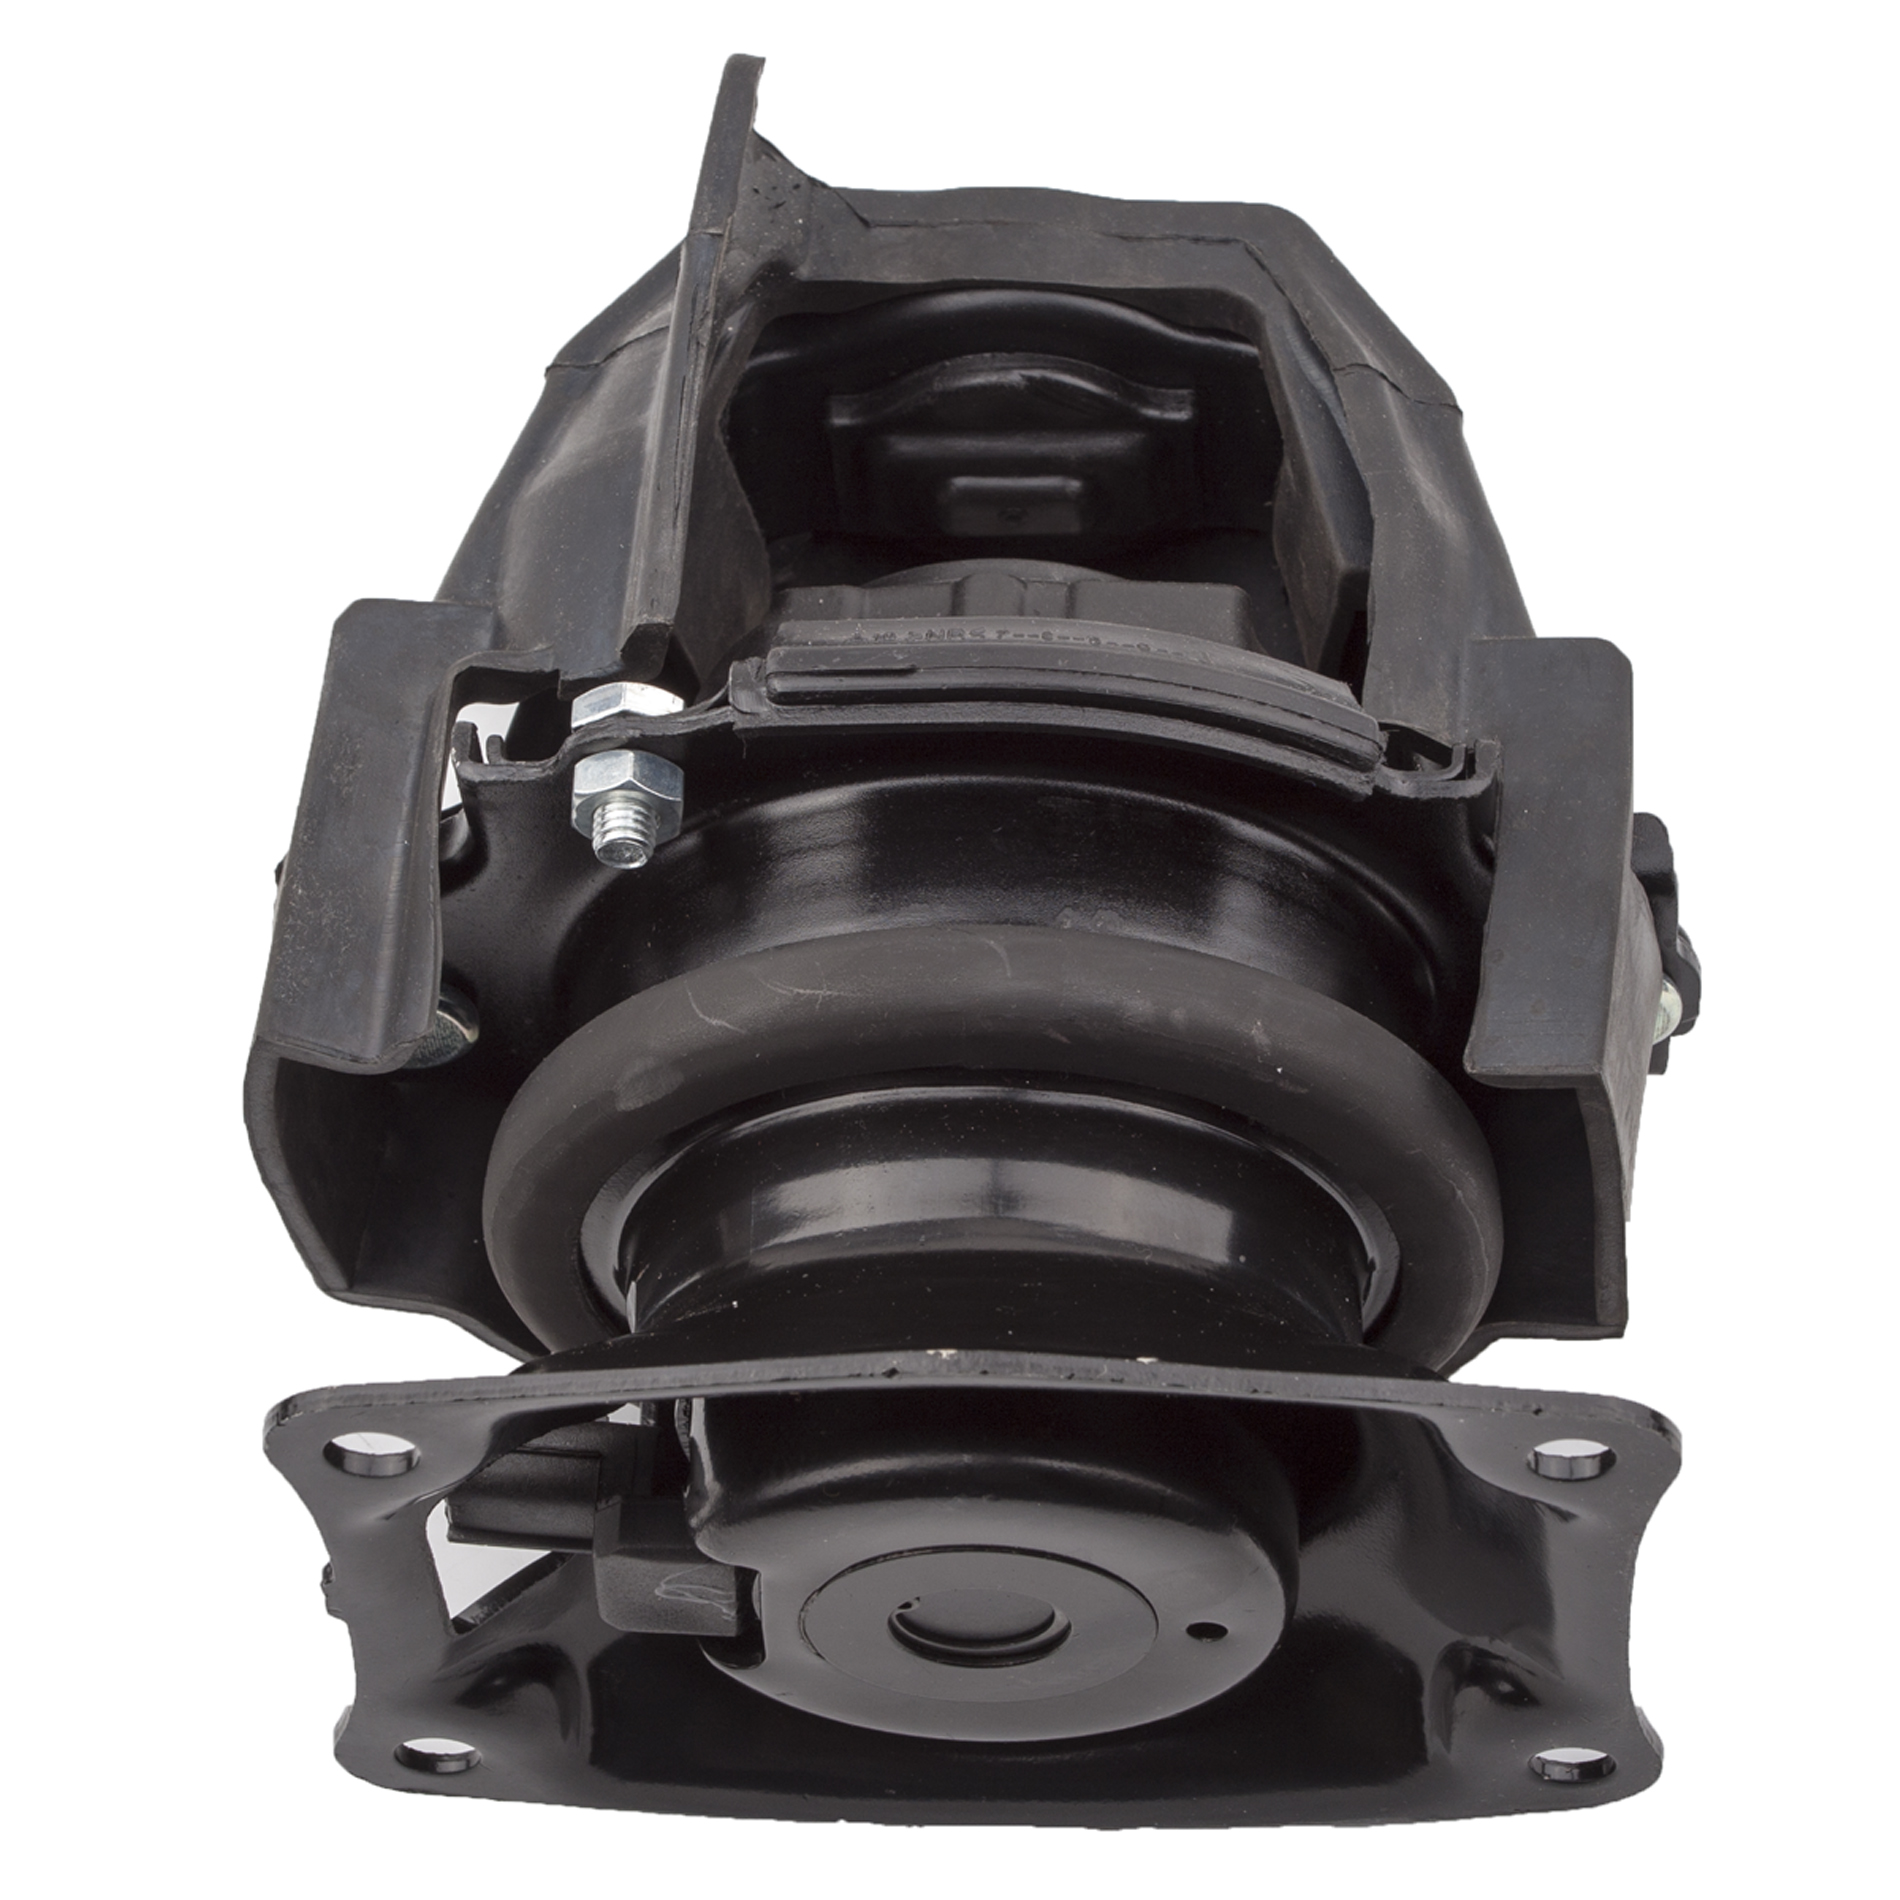 MotorKing For 08-15 Honda Accord Odyssey 3.5L Front Engine